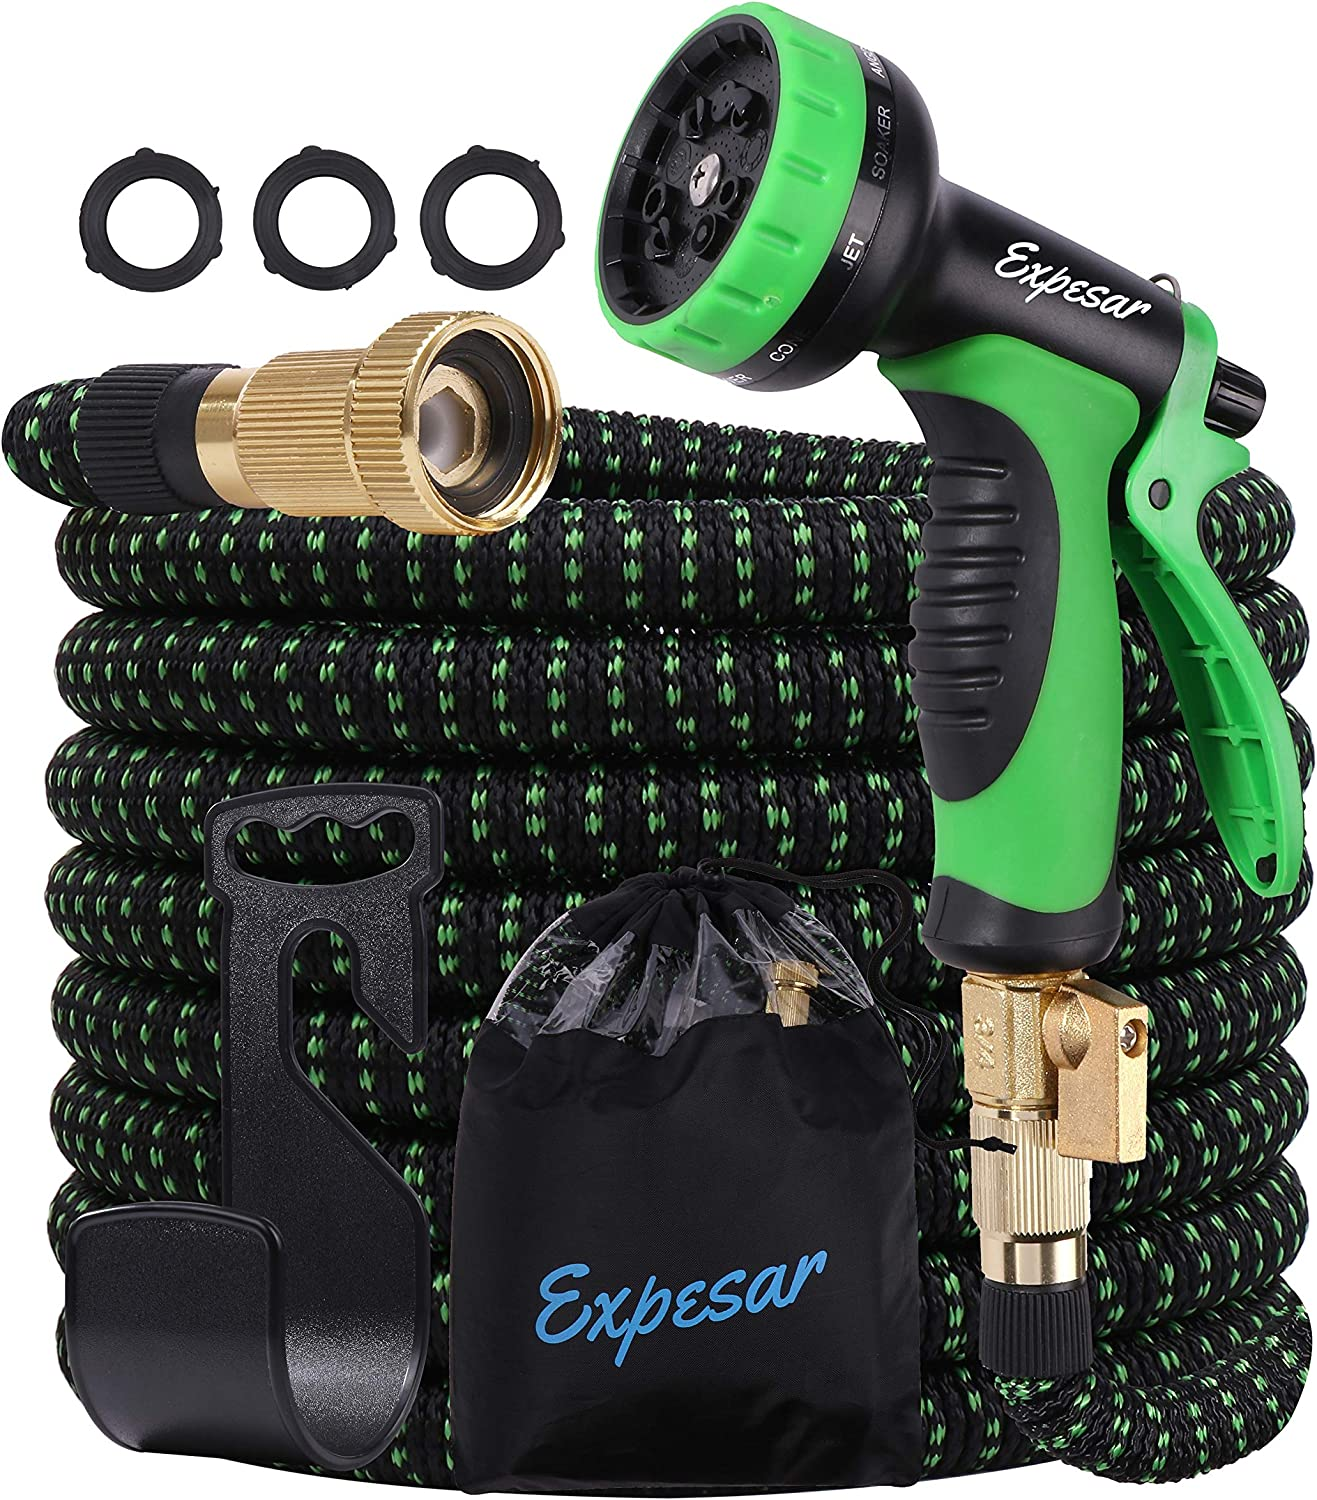 Water Hose 50 ft Expandable and Retractable Garden Hoses Super Lightweight,no kink,Heavy Duty Double Latex Core and equipped with 10 Patterns Nozzle Sprayer with Holder